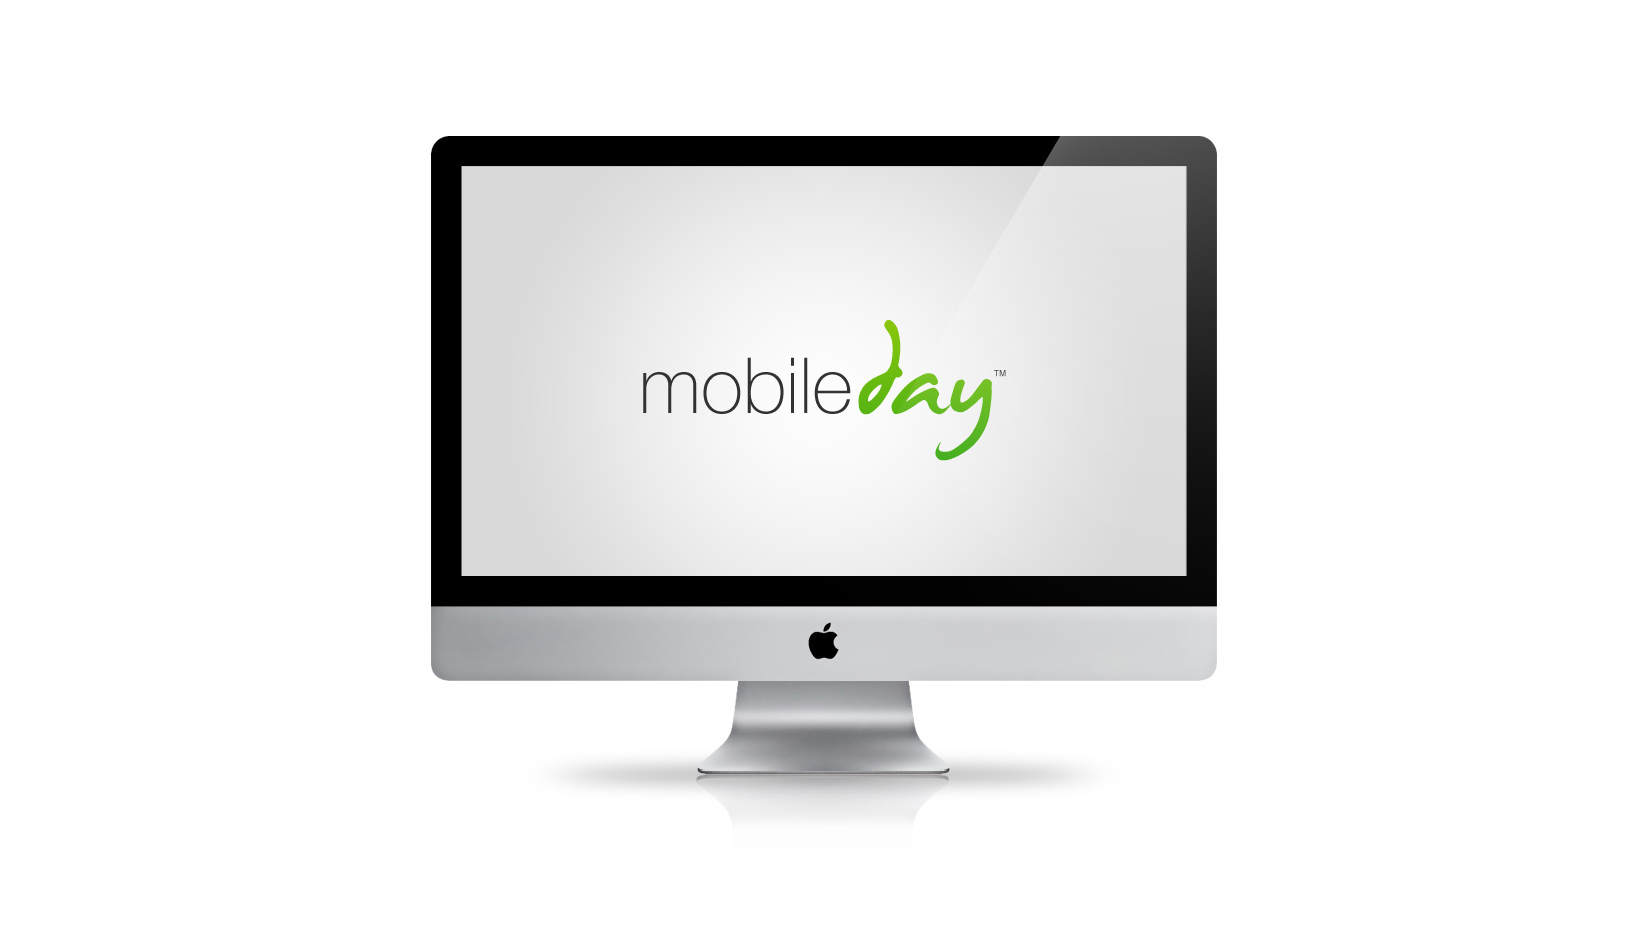 logo-mobileday